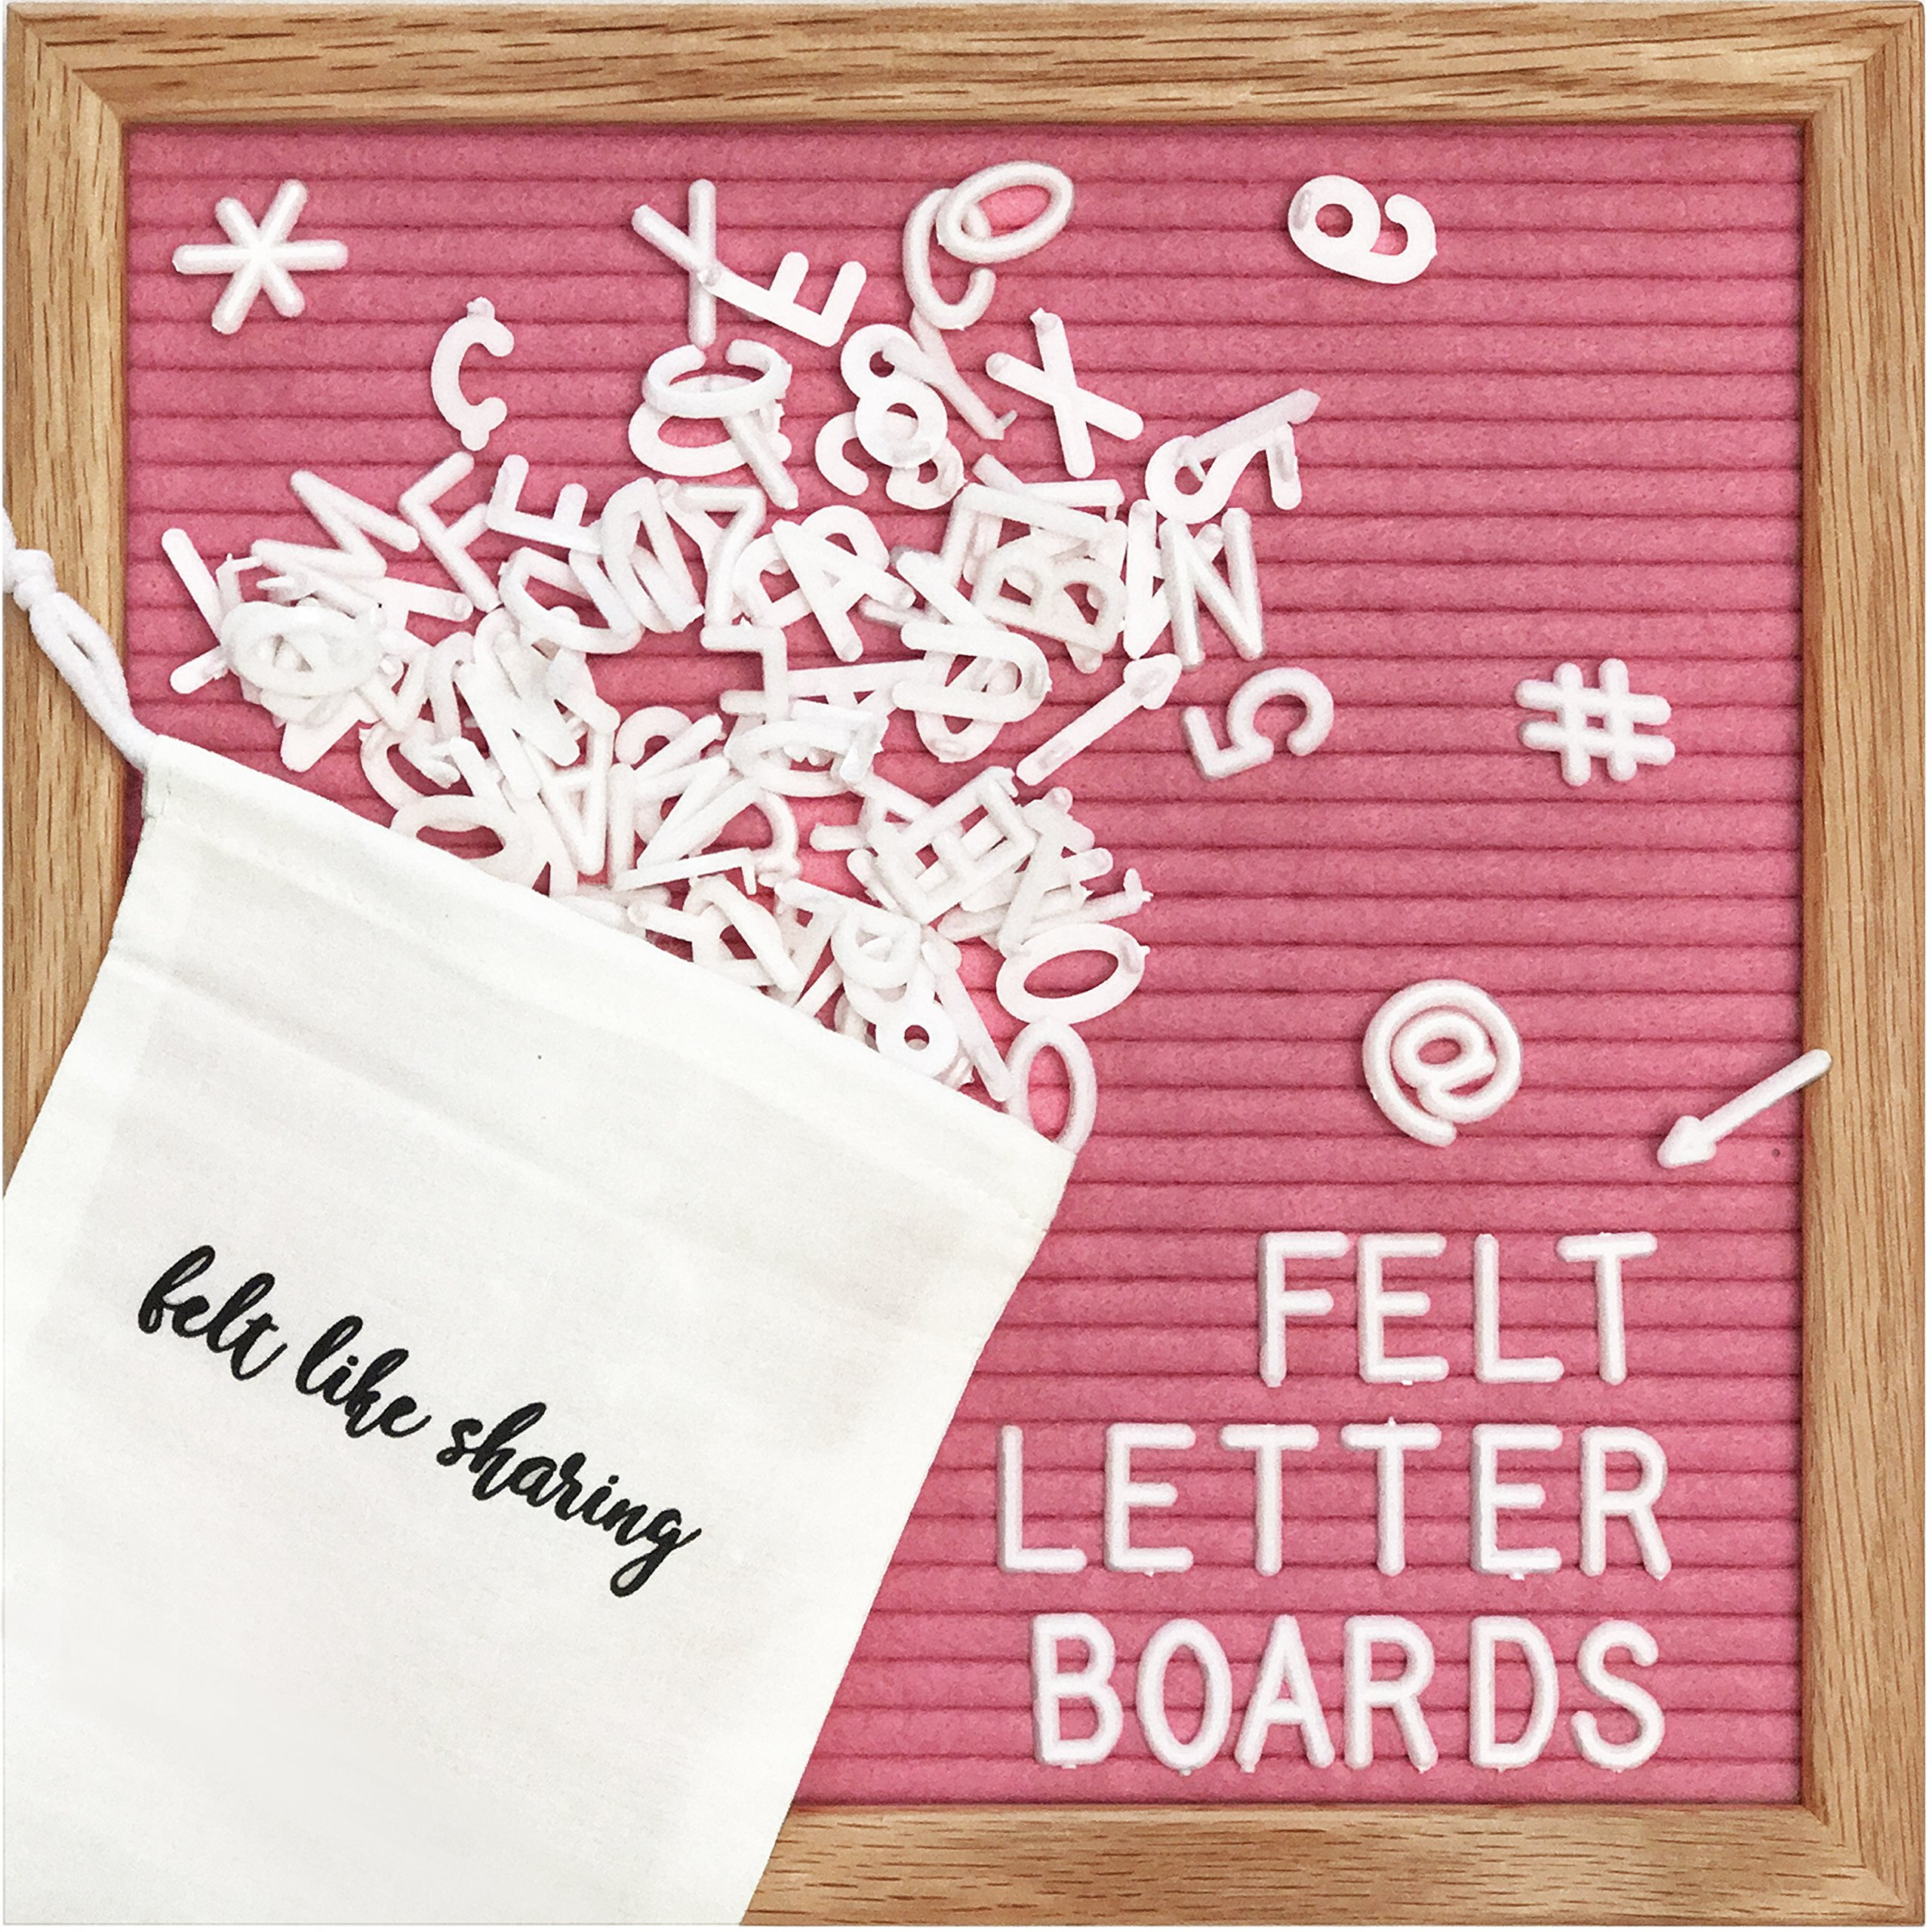 Hot Pink Felt Letter Board 10x10 inches. Changeable Letter Boards Include 300 White Plastic Letters & Oak Frame.